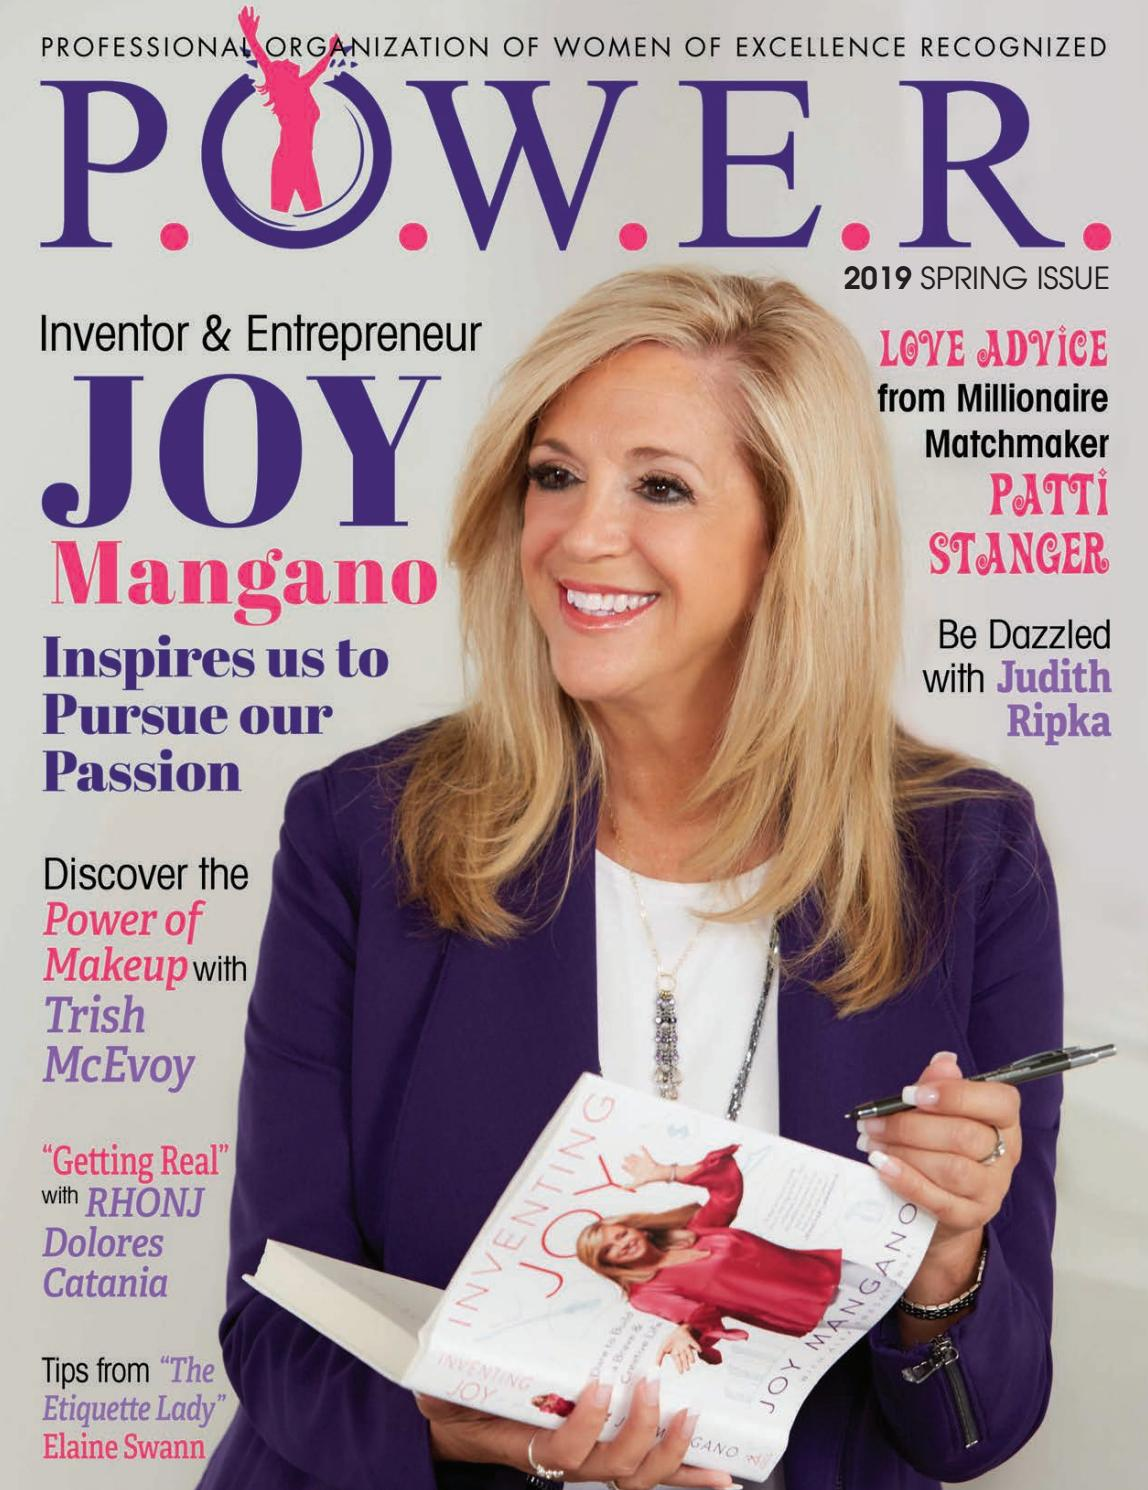 61902ed841b9 P.O.W.E.R. Magazine Spring 2019 by Professional Organization of Women of  Excellence Recognized - issuu